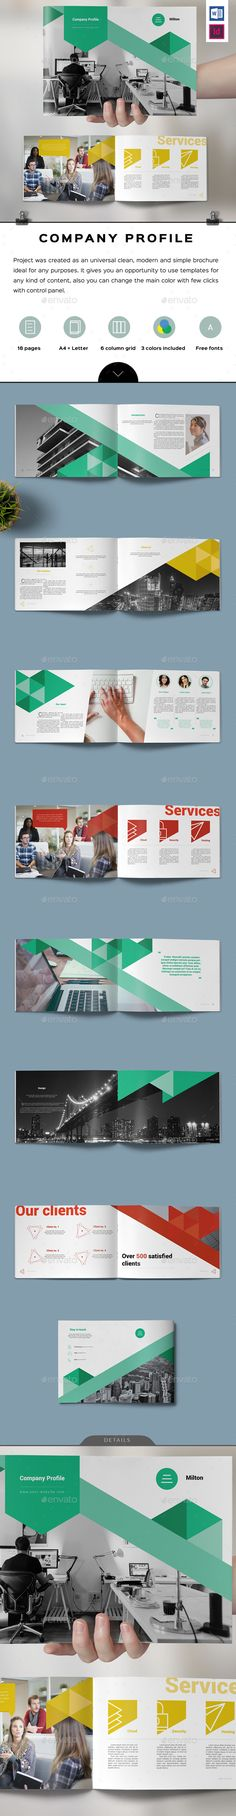 Corporate Brochure Corporate brochure, Brochures and Brochure - corporate profile template